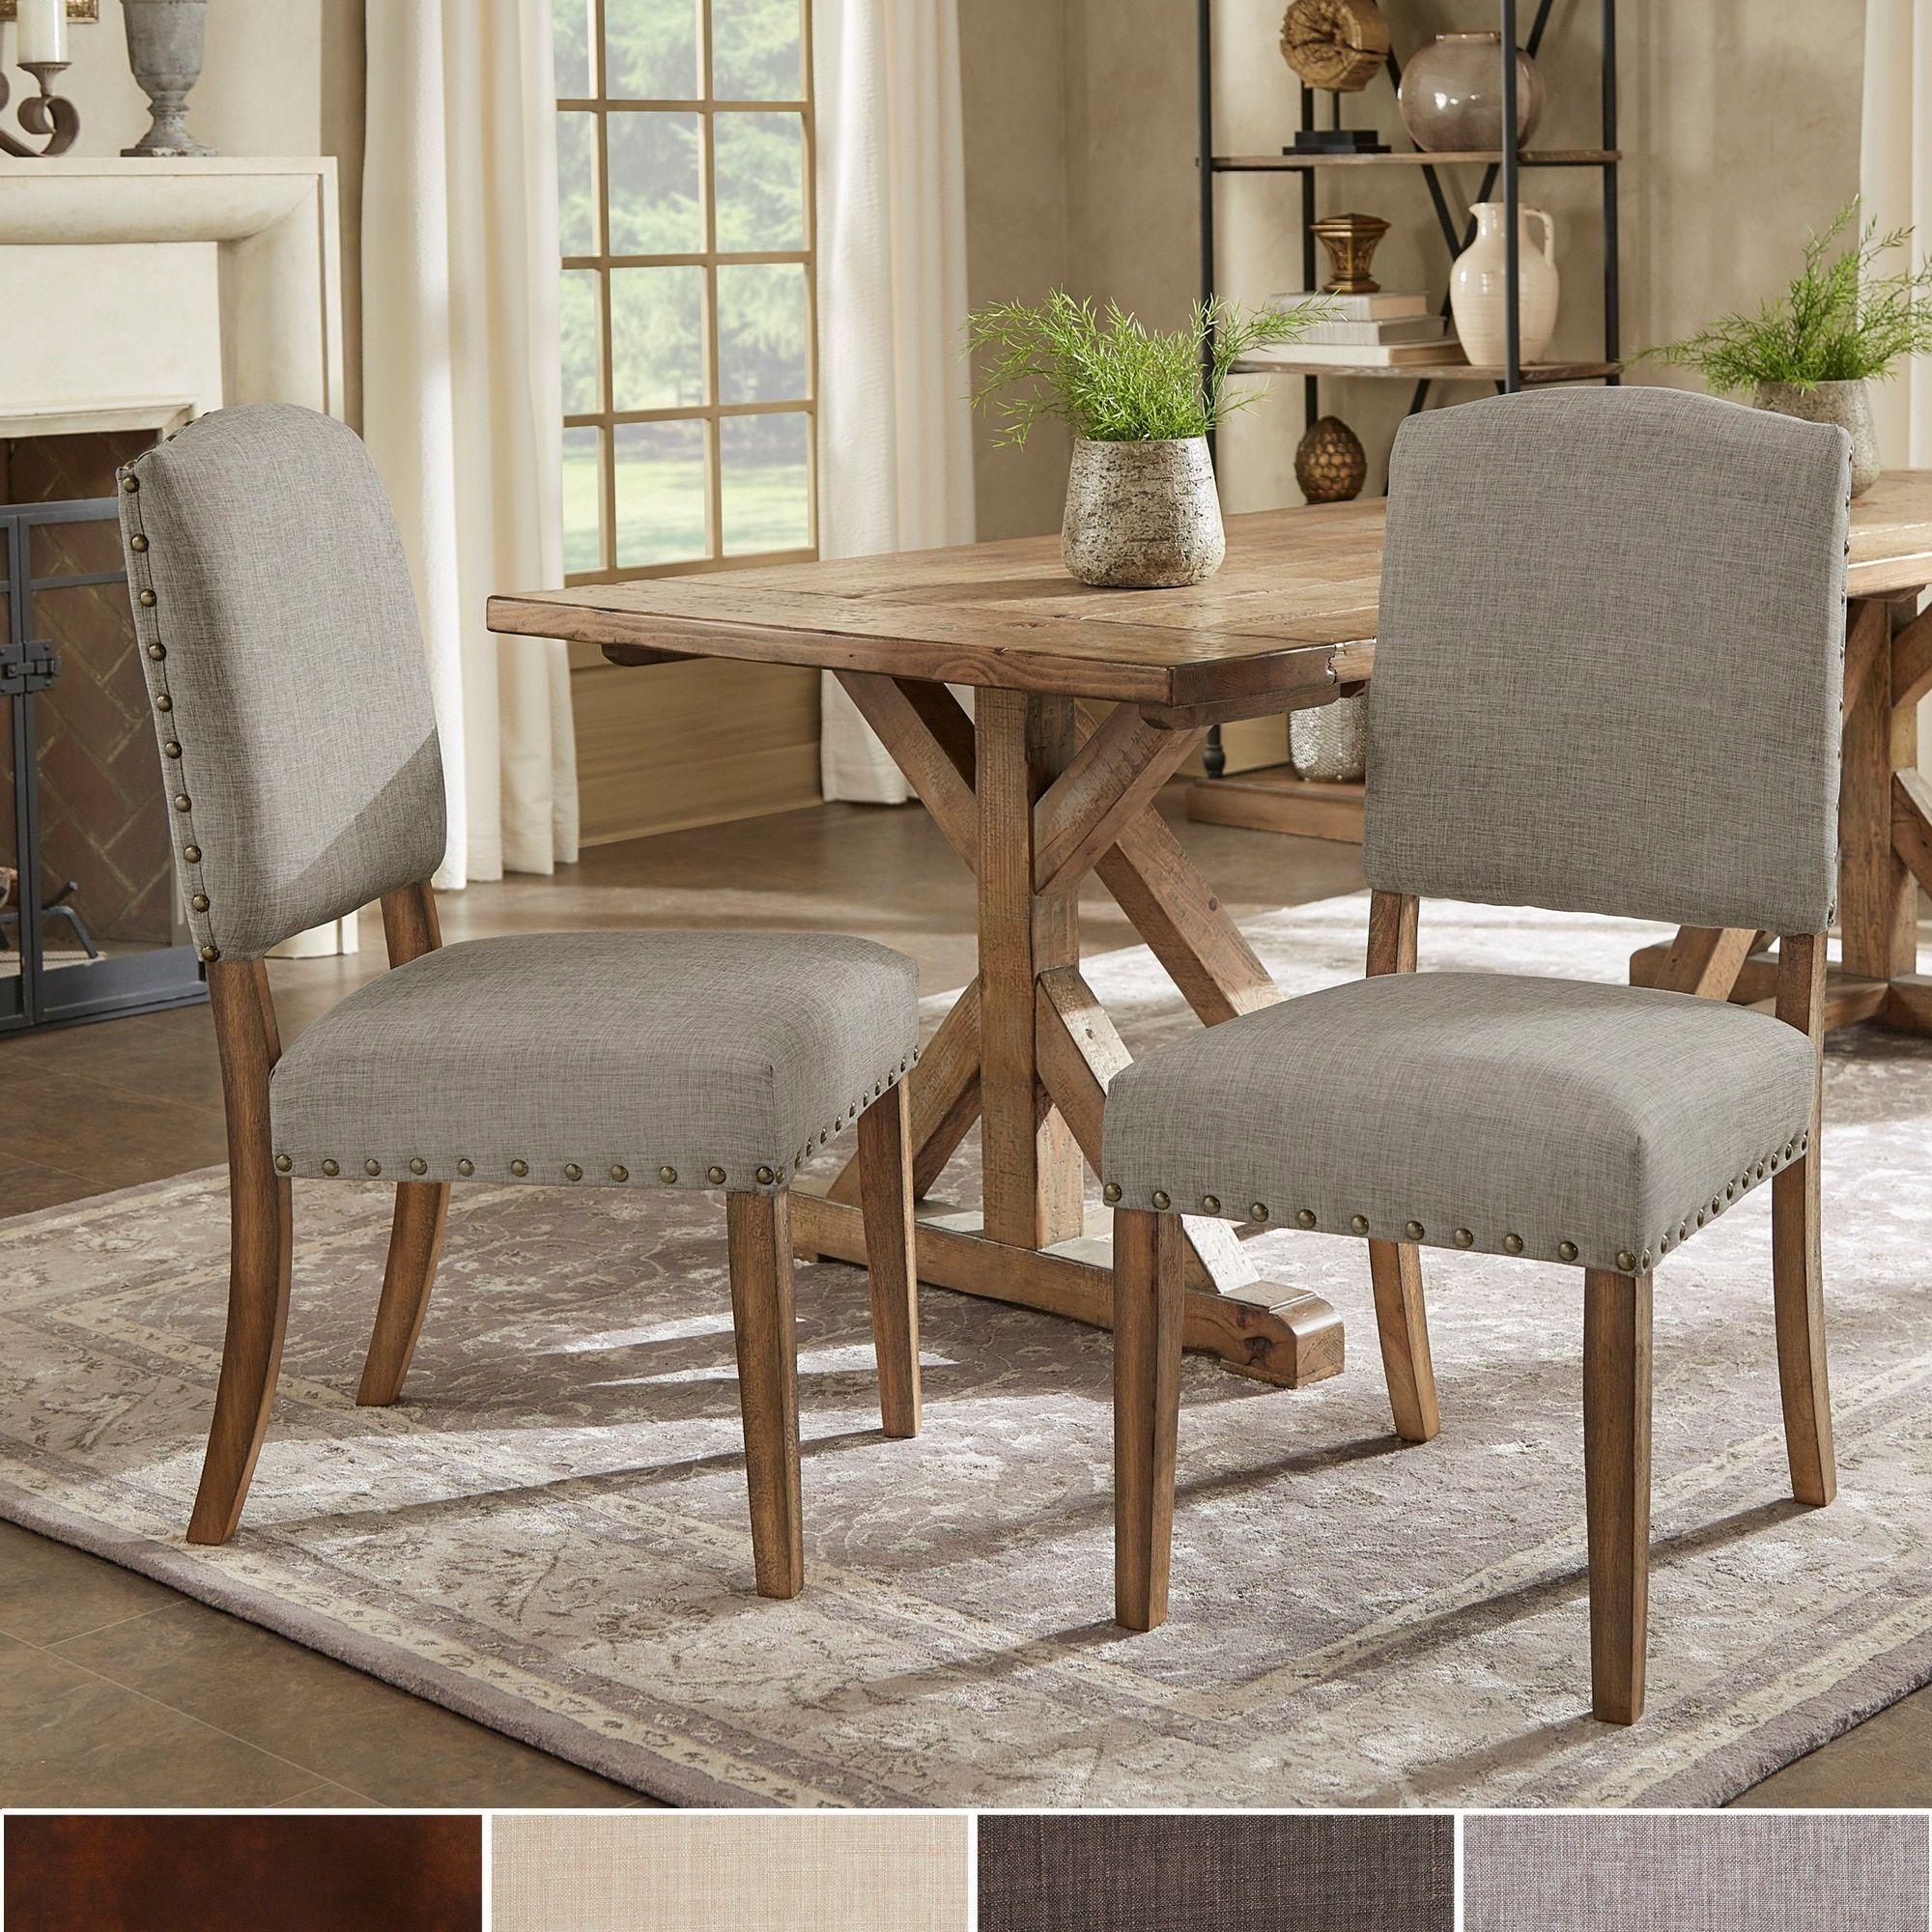 Dining Room Sets Leather Chairs New Benchwright Nailhead Upholstered Dining Side Chairssignal Decorating Inspiration